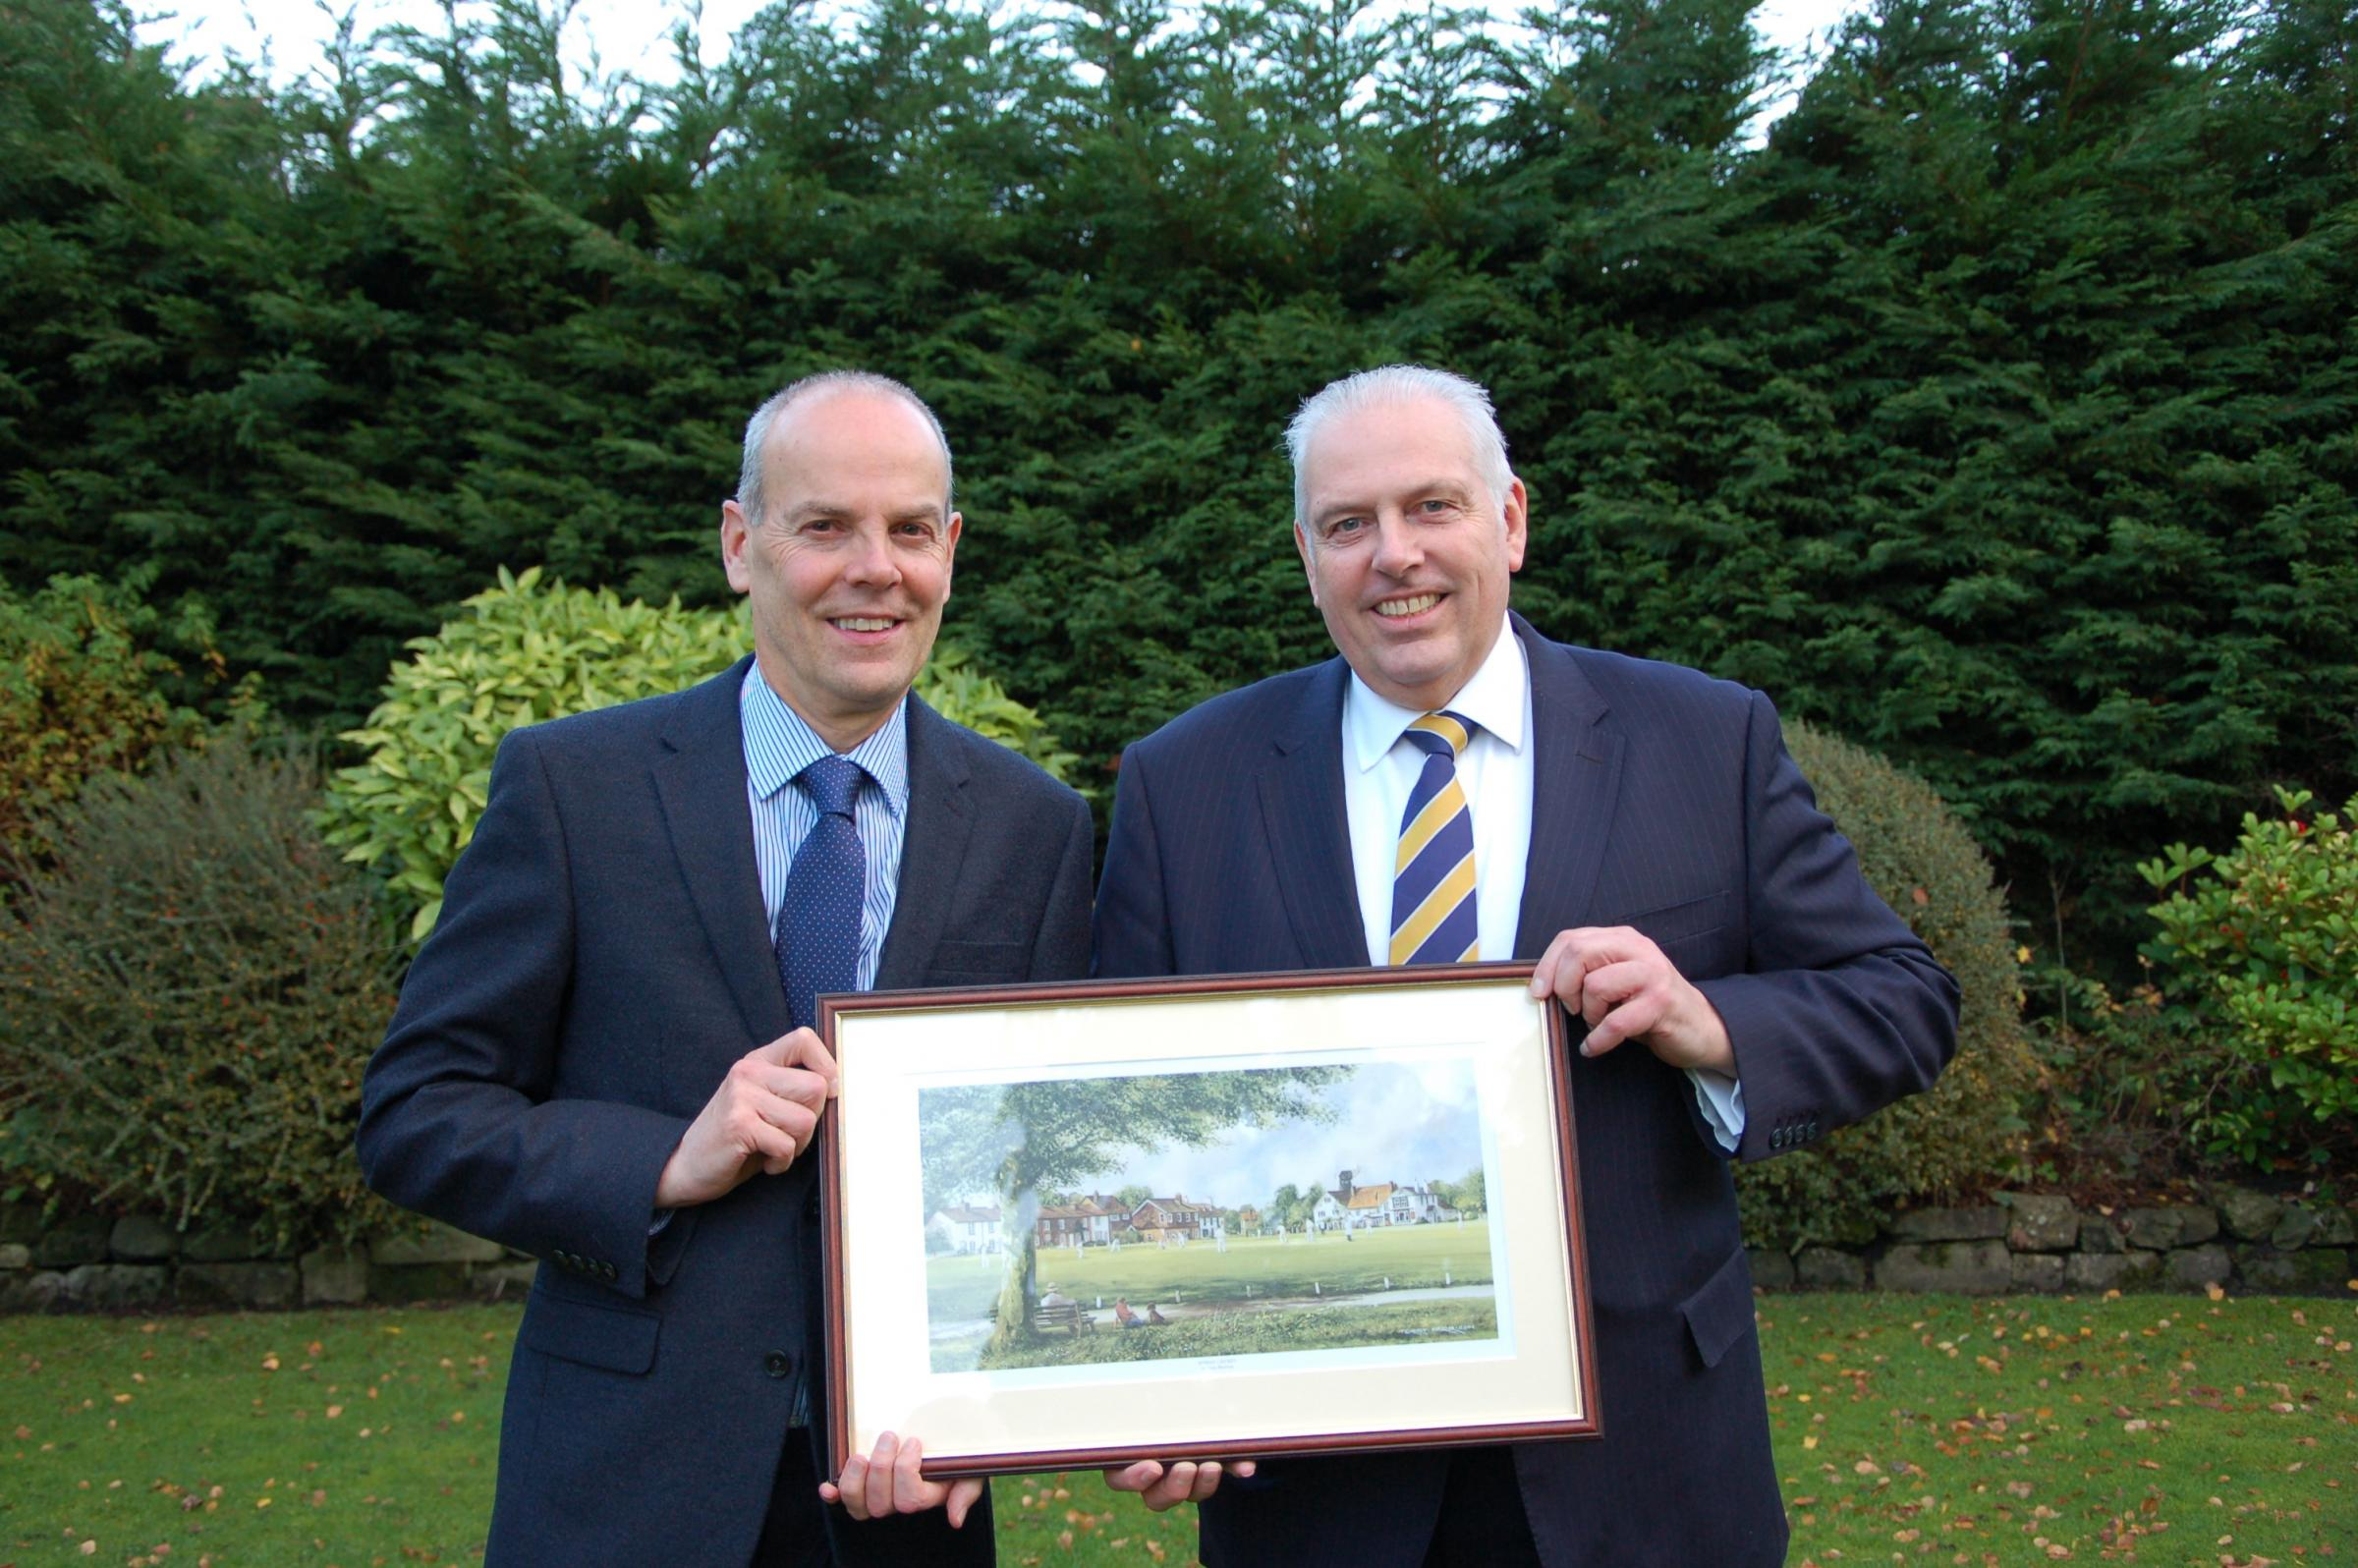 FIRM SUPPORT: Charles Walker (left) and Robert Woolley of HPH were presented with a watercolour painting by York Vale Cricket League chairman Shane Hargrave to celebrate 25 years of sponsorship from the firm